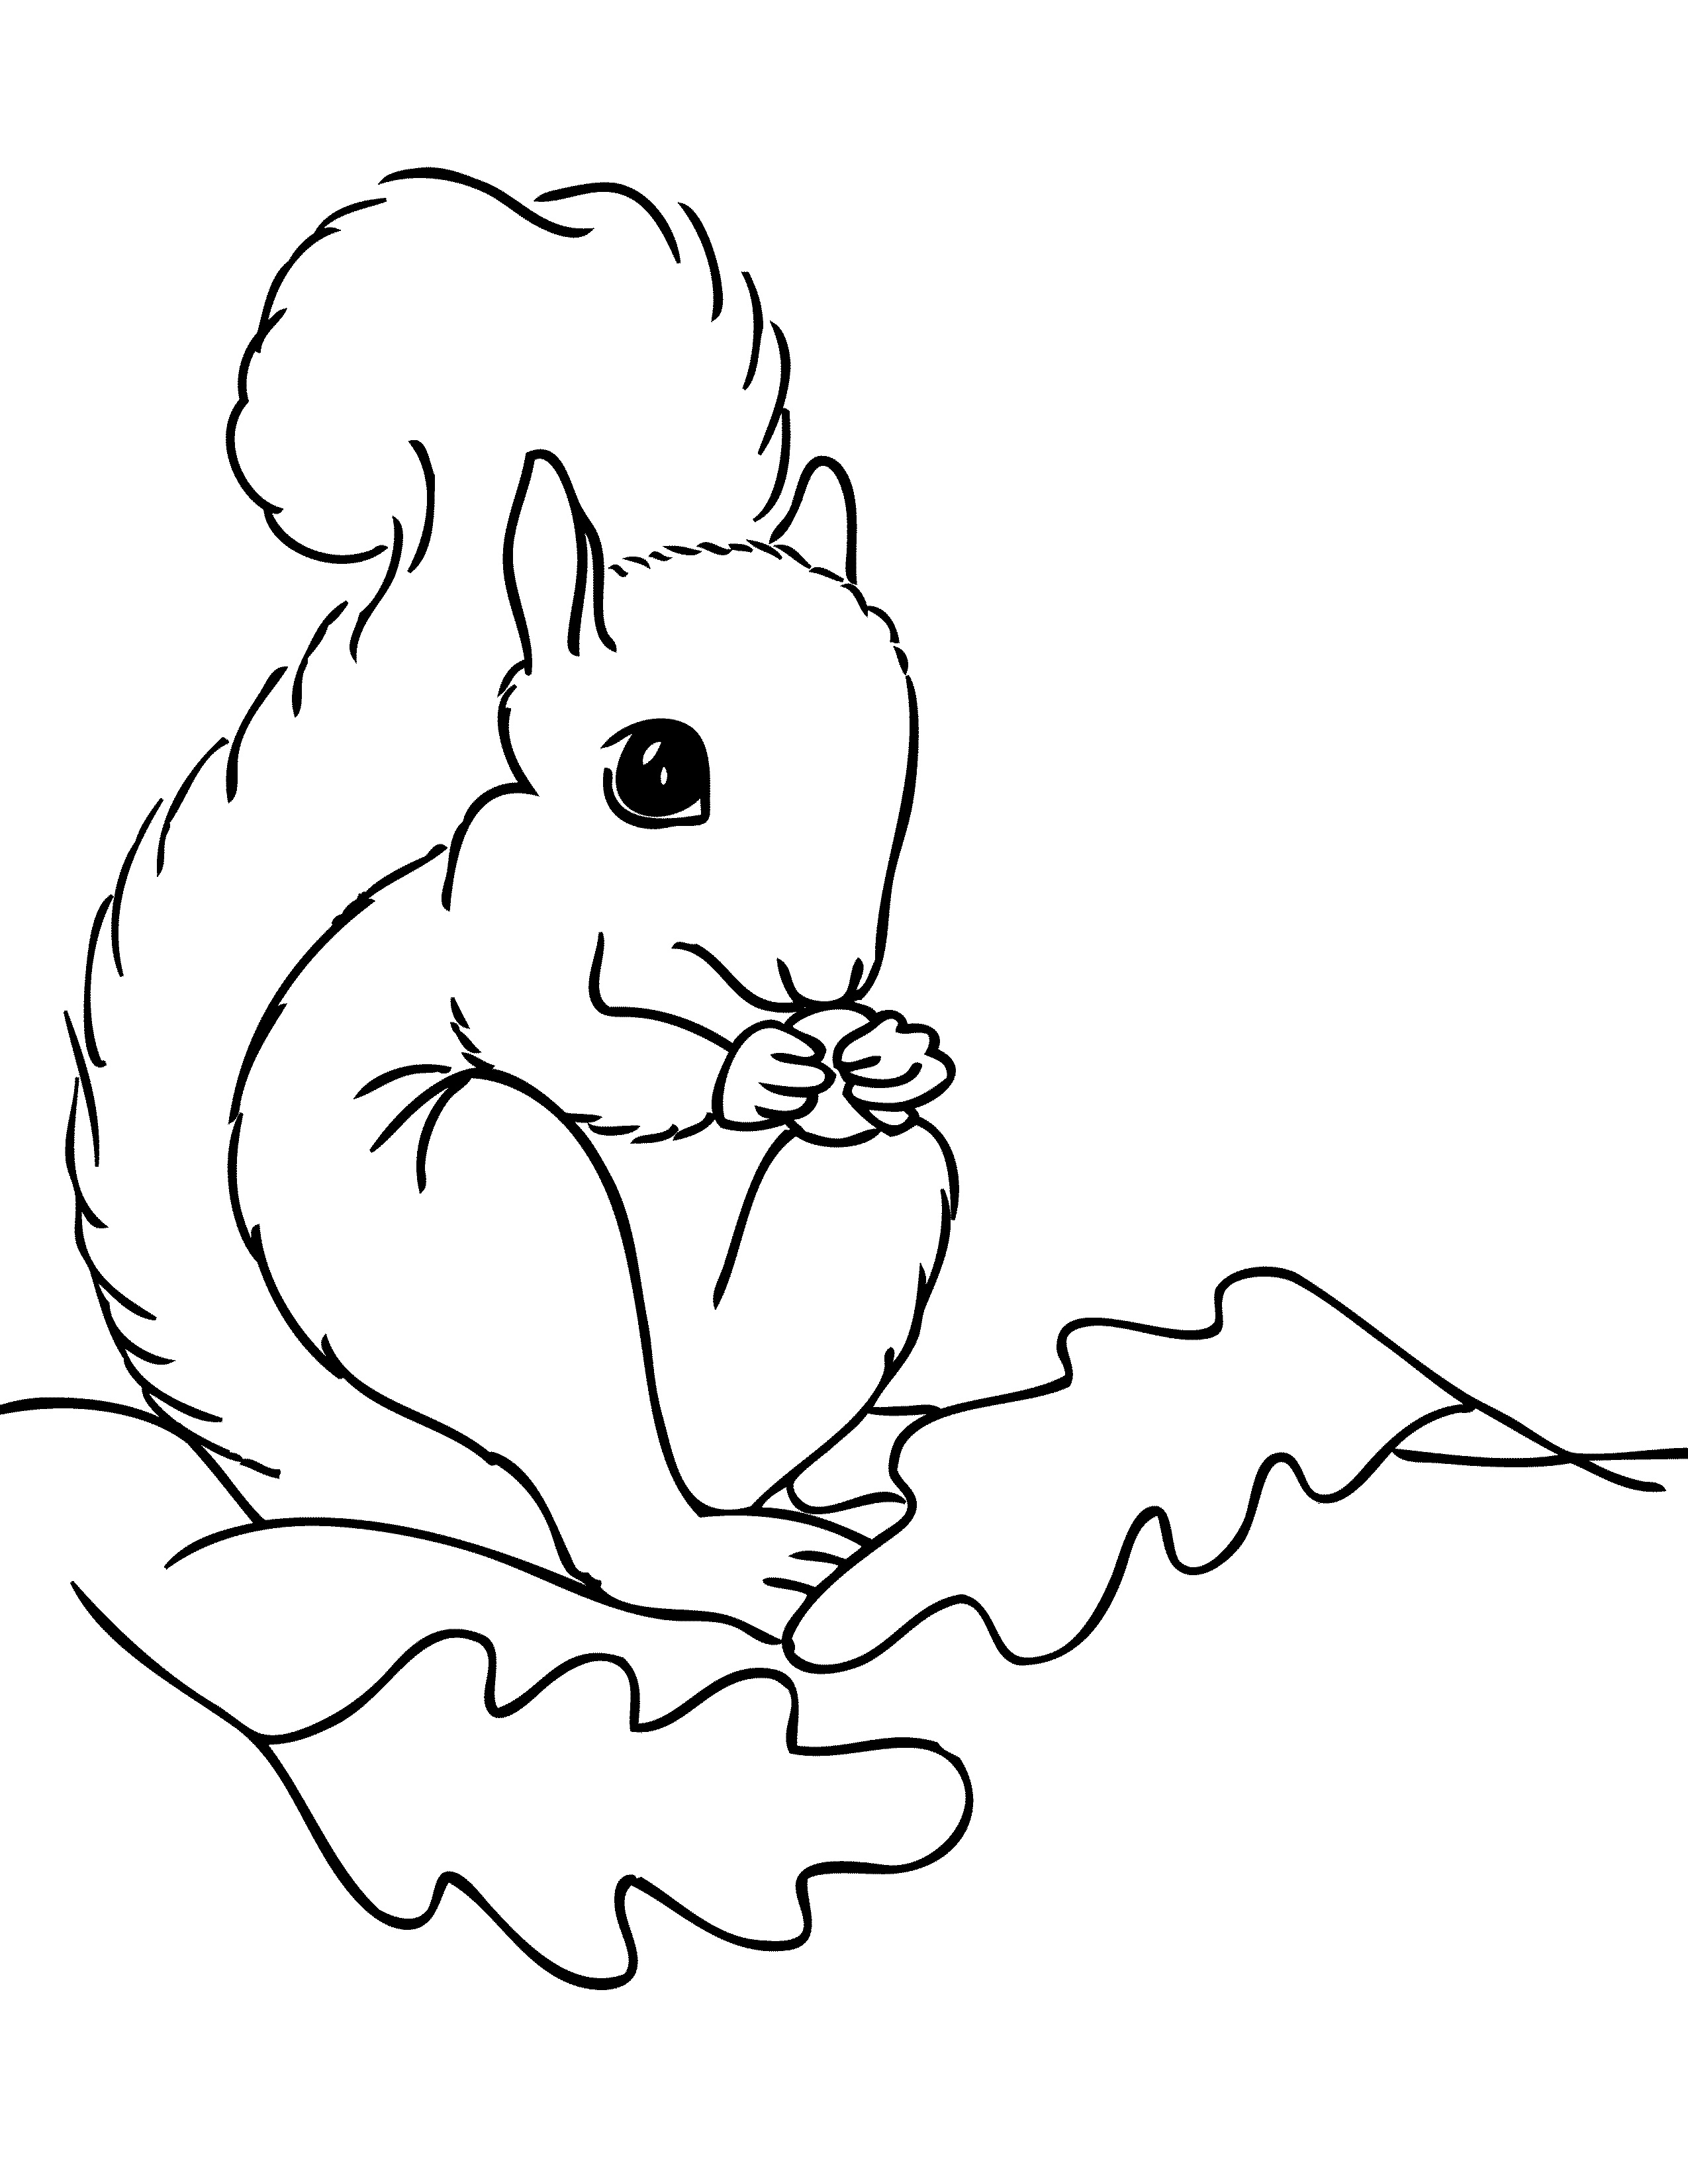 printable coloring pages of squirrels - free printable squirrel coloring pages for kids animal place